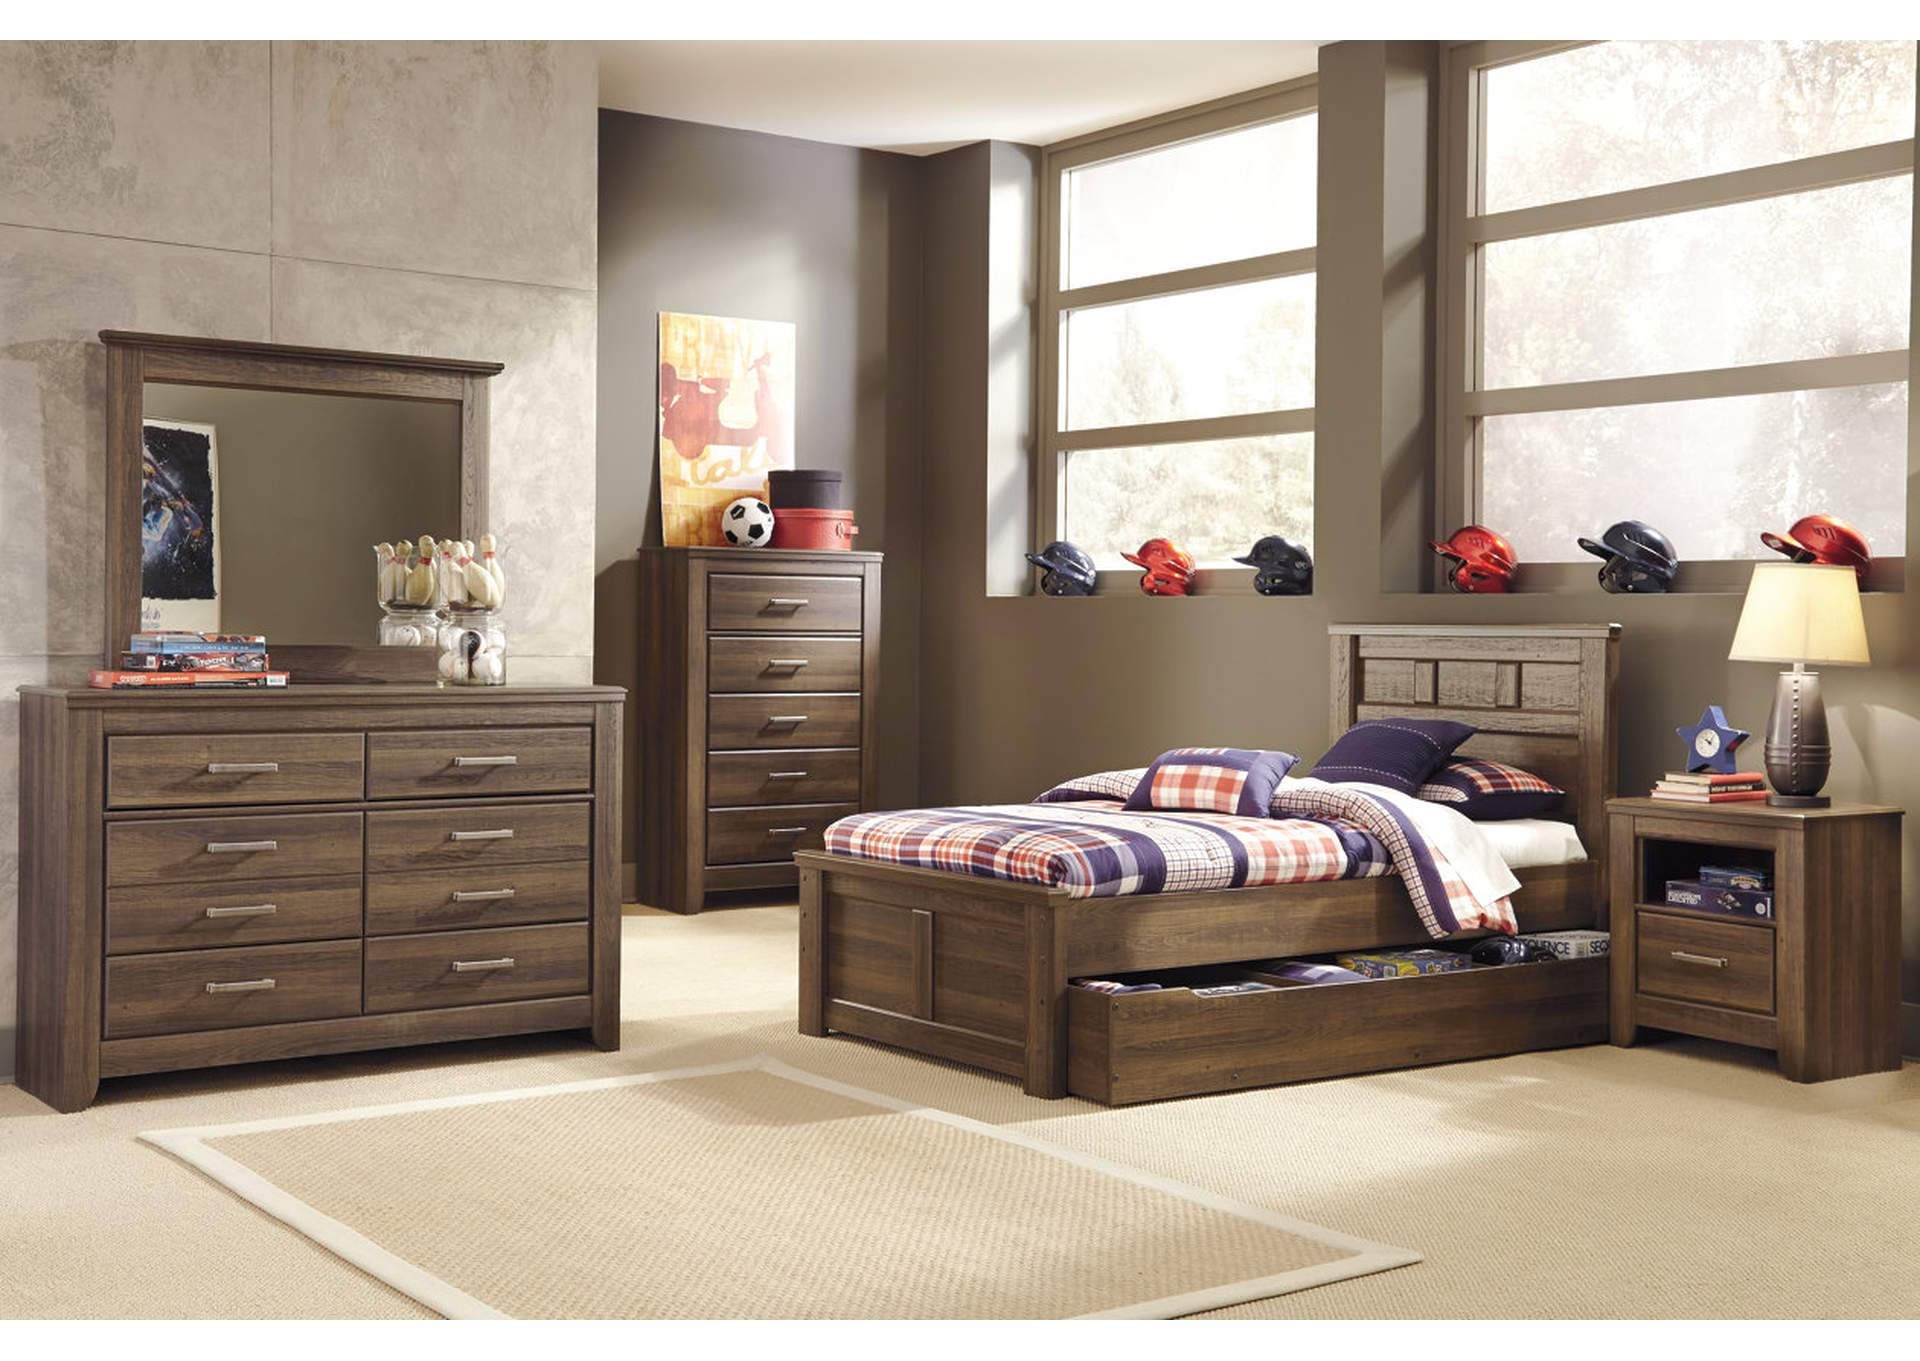 Juararo Twin Panel Storage Bed w/Dresser, Mirror & Drawer Chest,Signature Design by Ashley